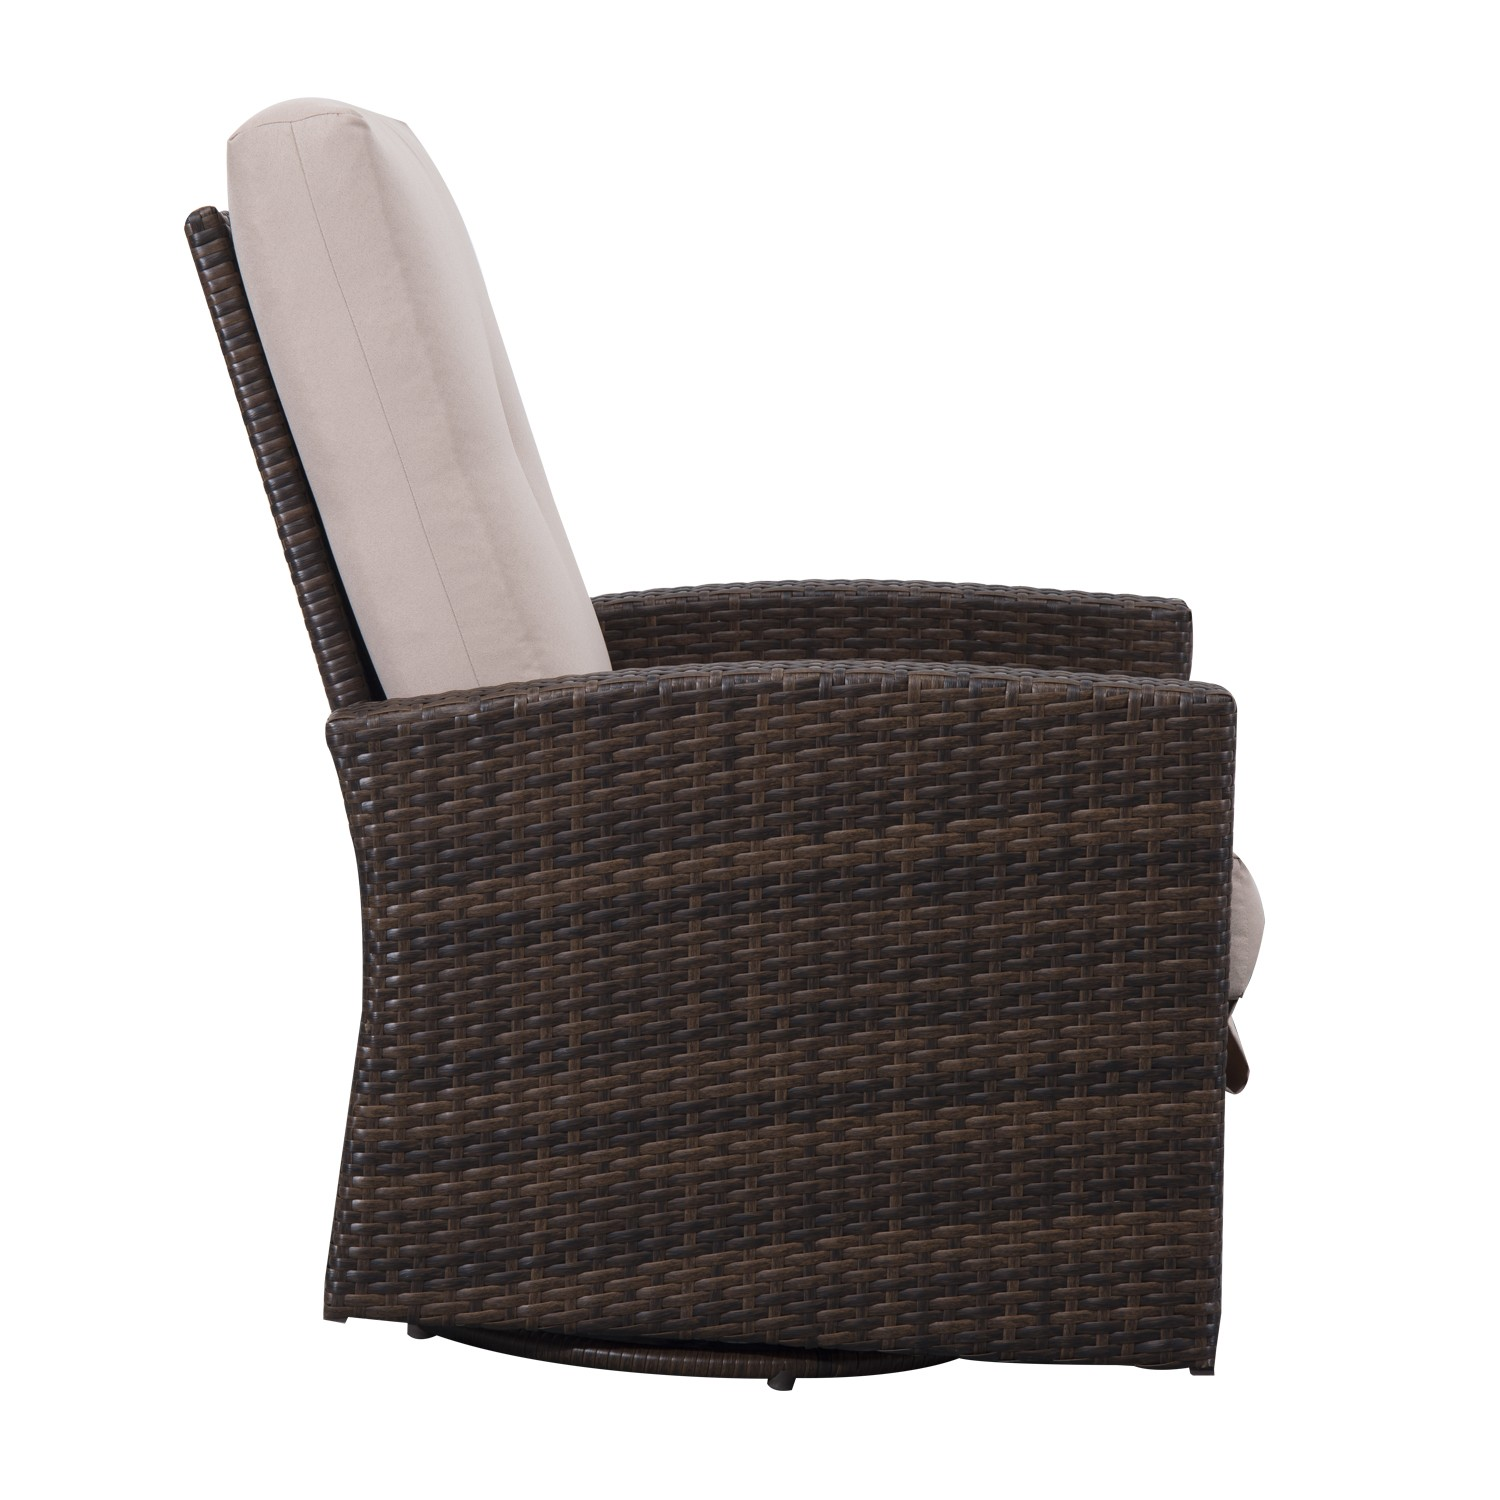 Rattan Swivel Rocker | Resin Wicker Swivel Chair | Swivel Papasan Chair